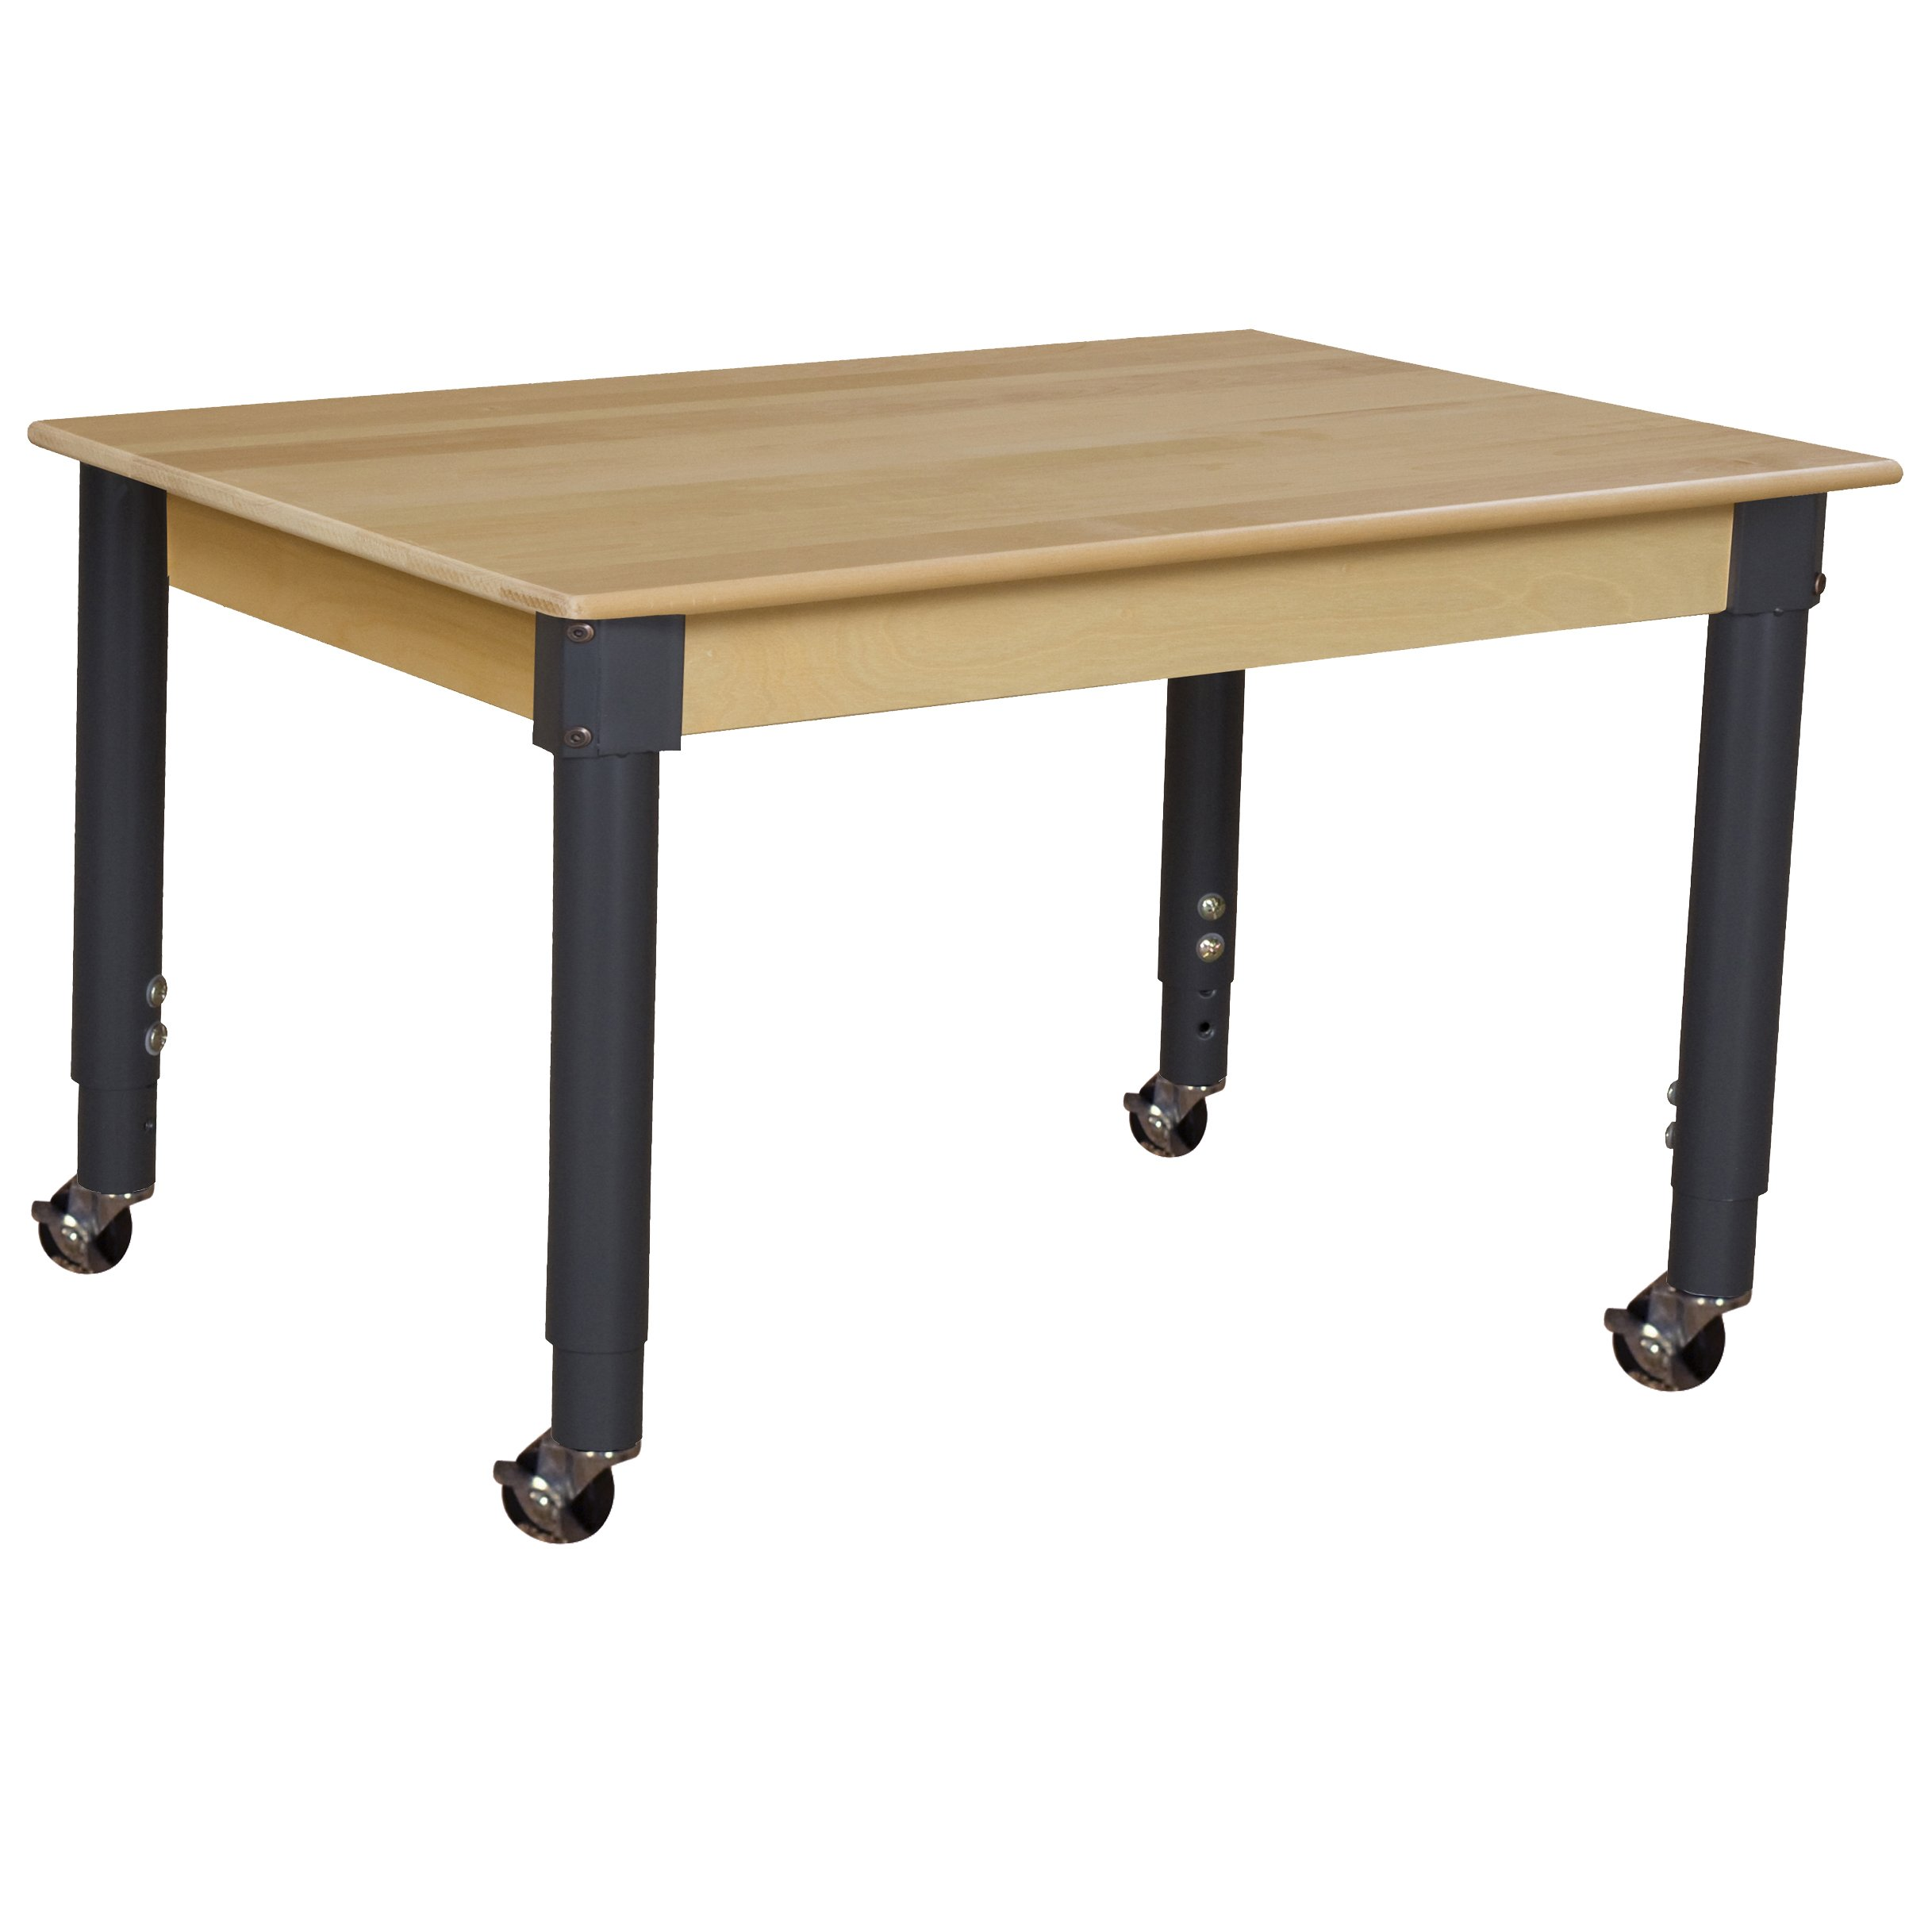 Wood Designs WD848A1829C6 - Mobile 24'' x 48'' Rectangle Hardwood Table with Adjustable Legs 20-31''